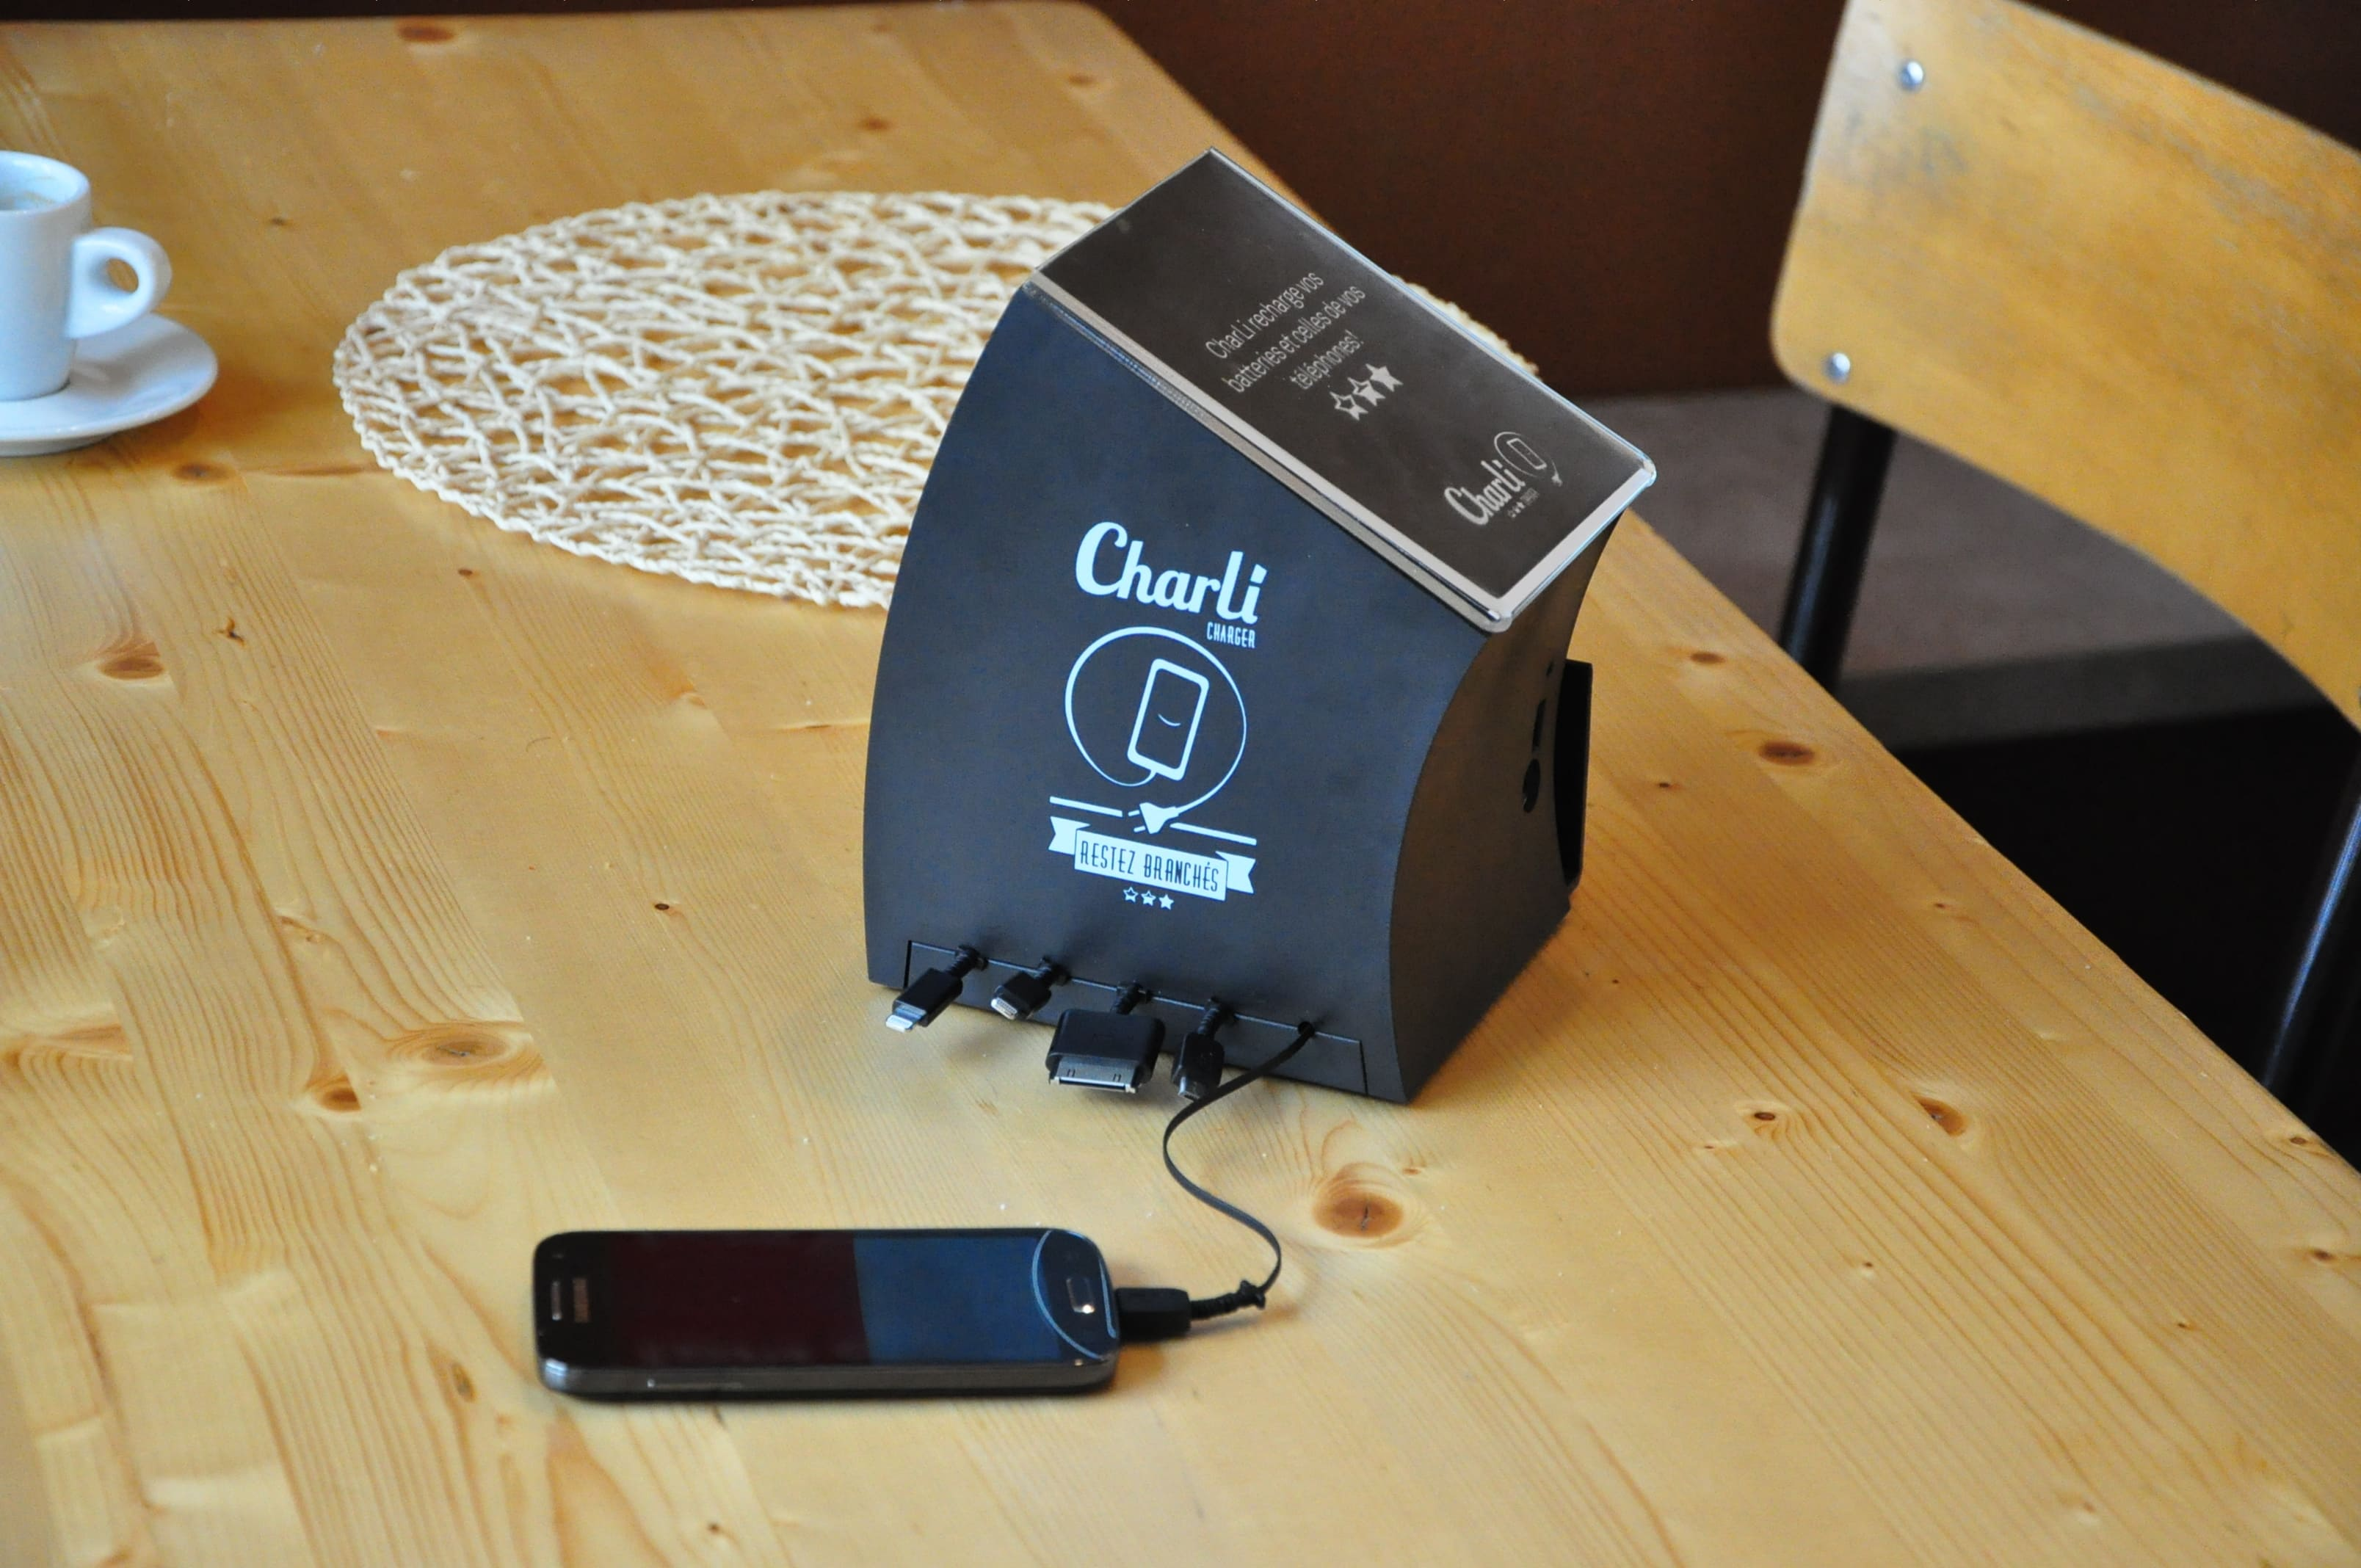 Charli_Charger, la borne de rechargement automatique